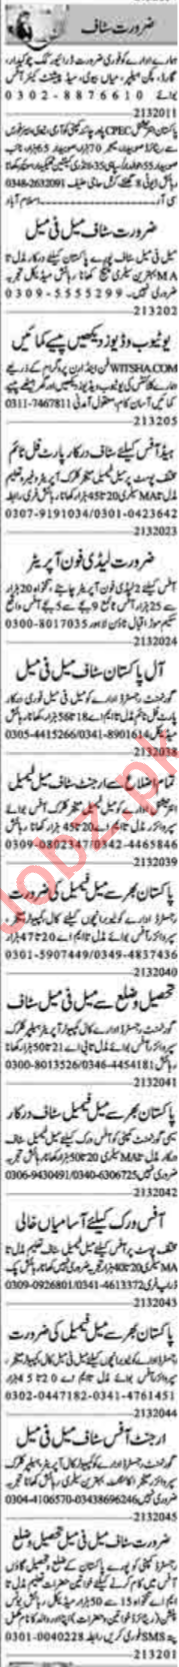 Daily Dunya Newspaper Classified Ads 2020 In Lahore